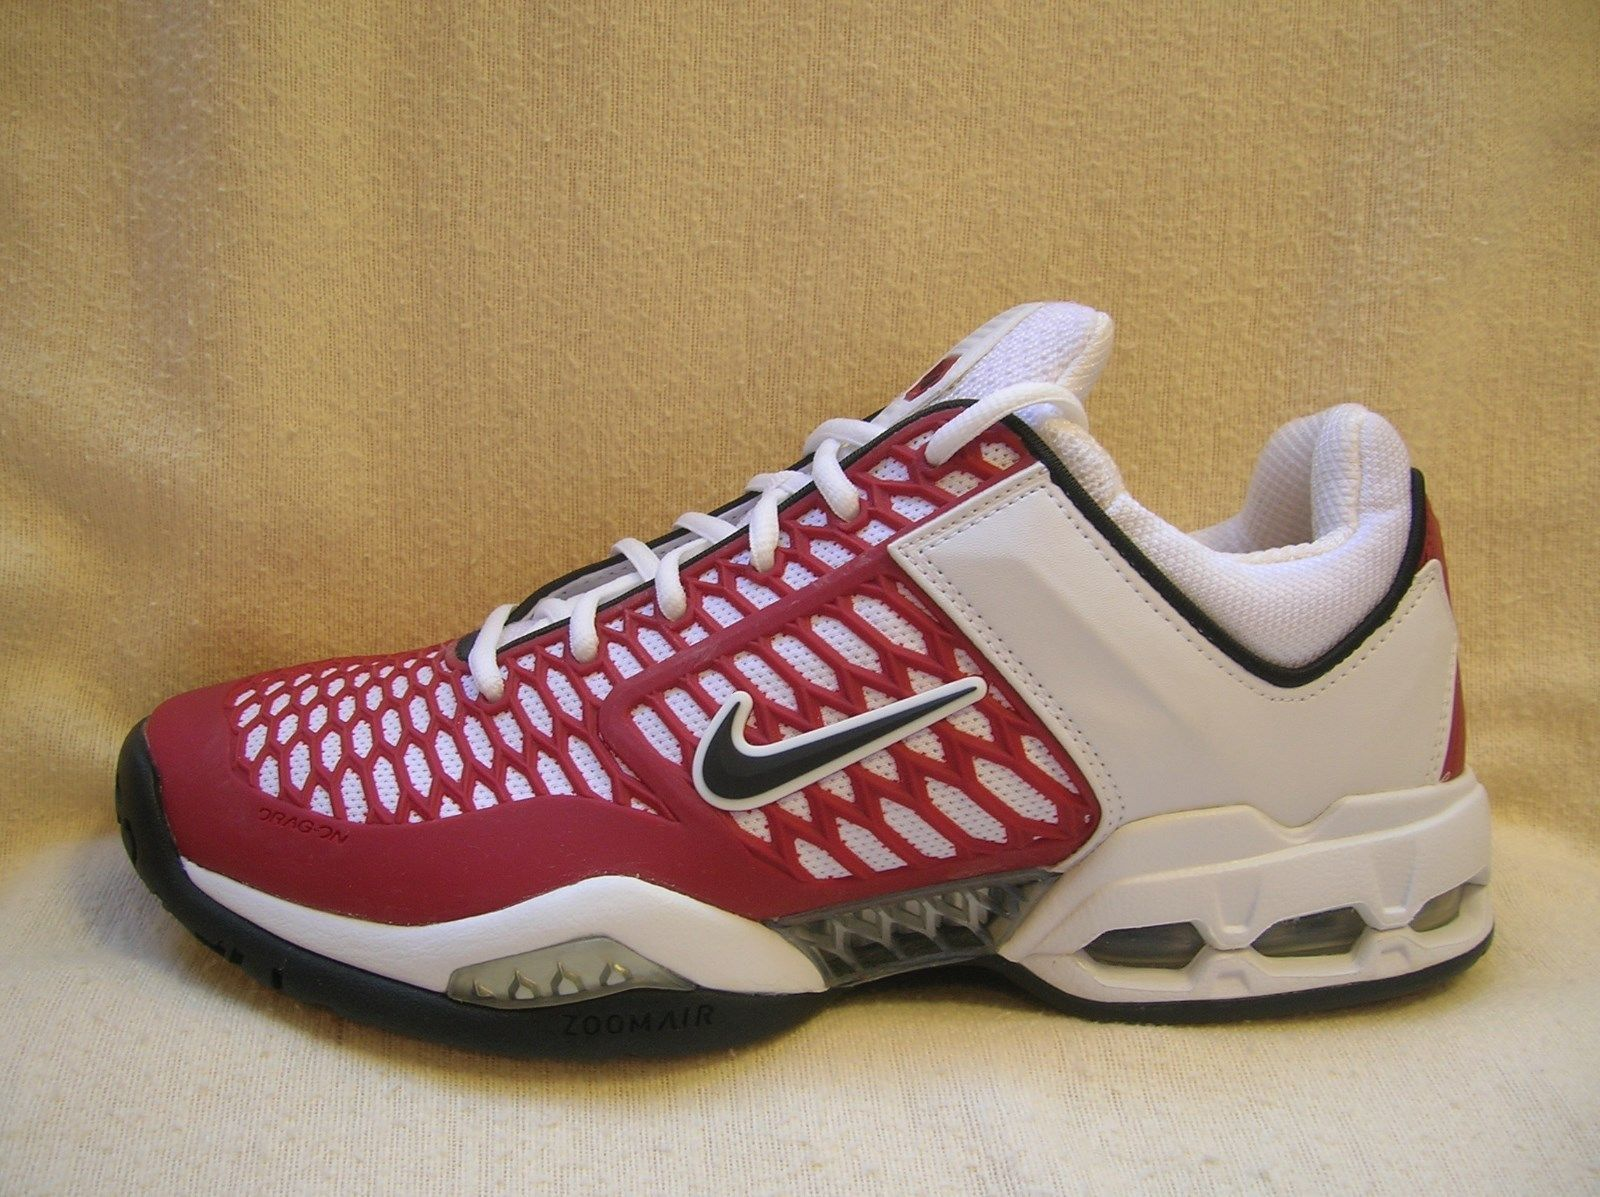 NEW! Nike Air Max Breathe Free II Men's Tennis Shoes, size